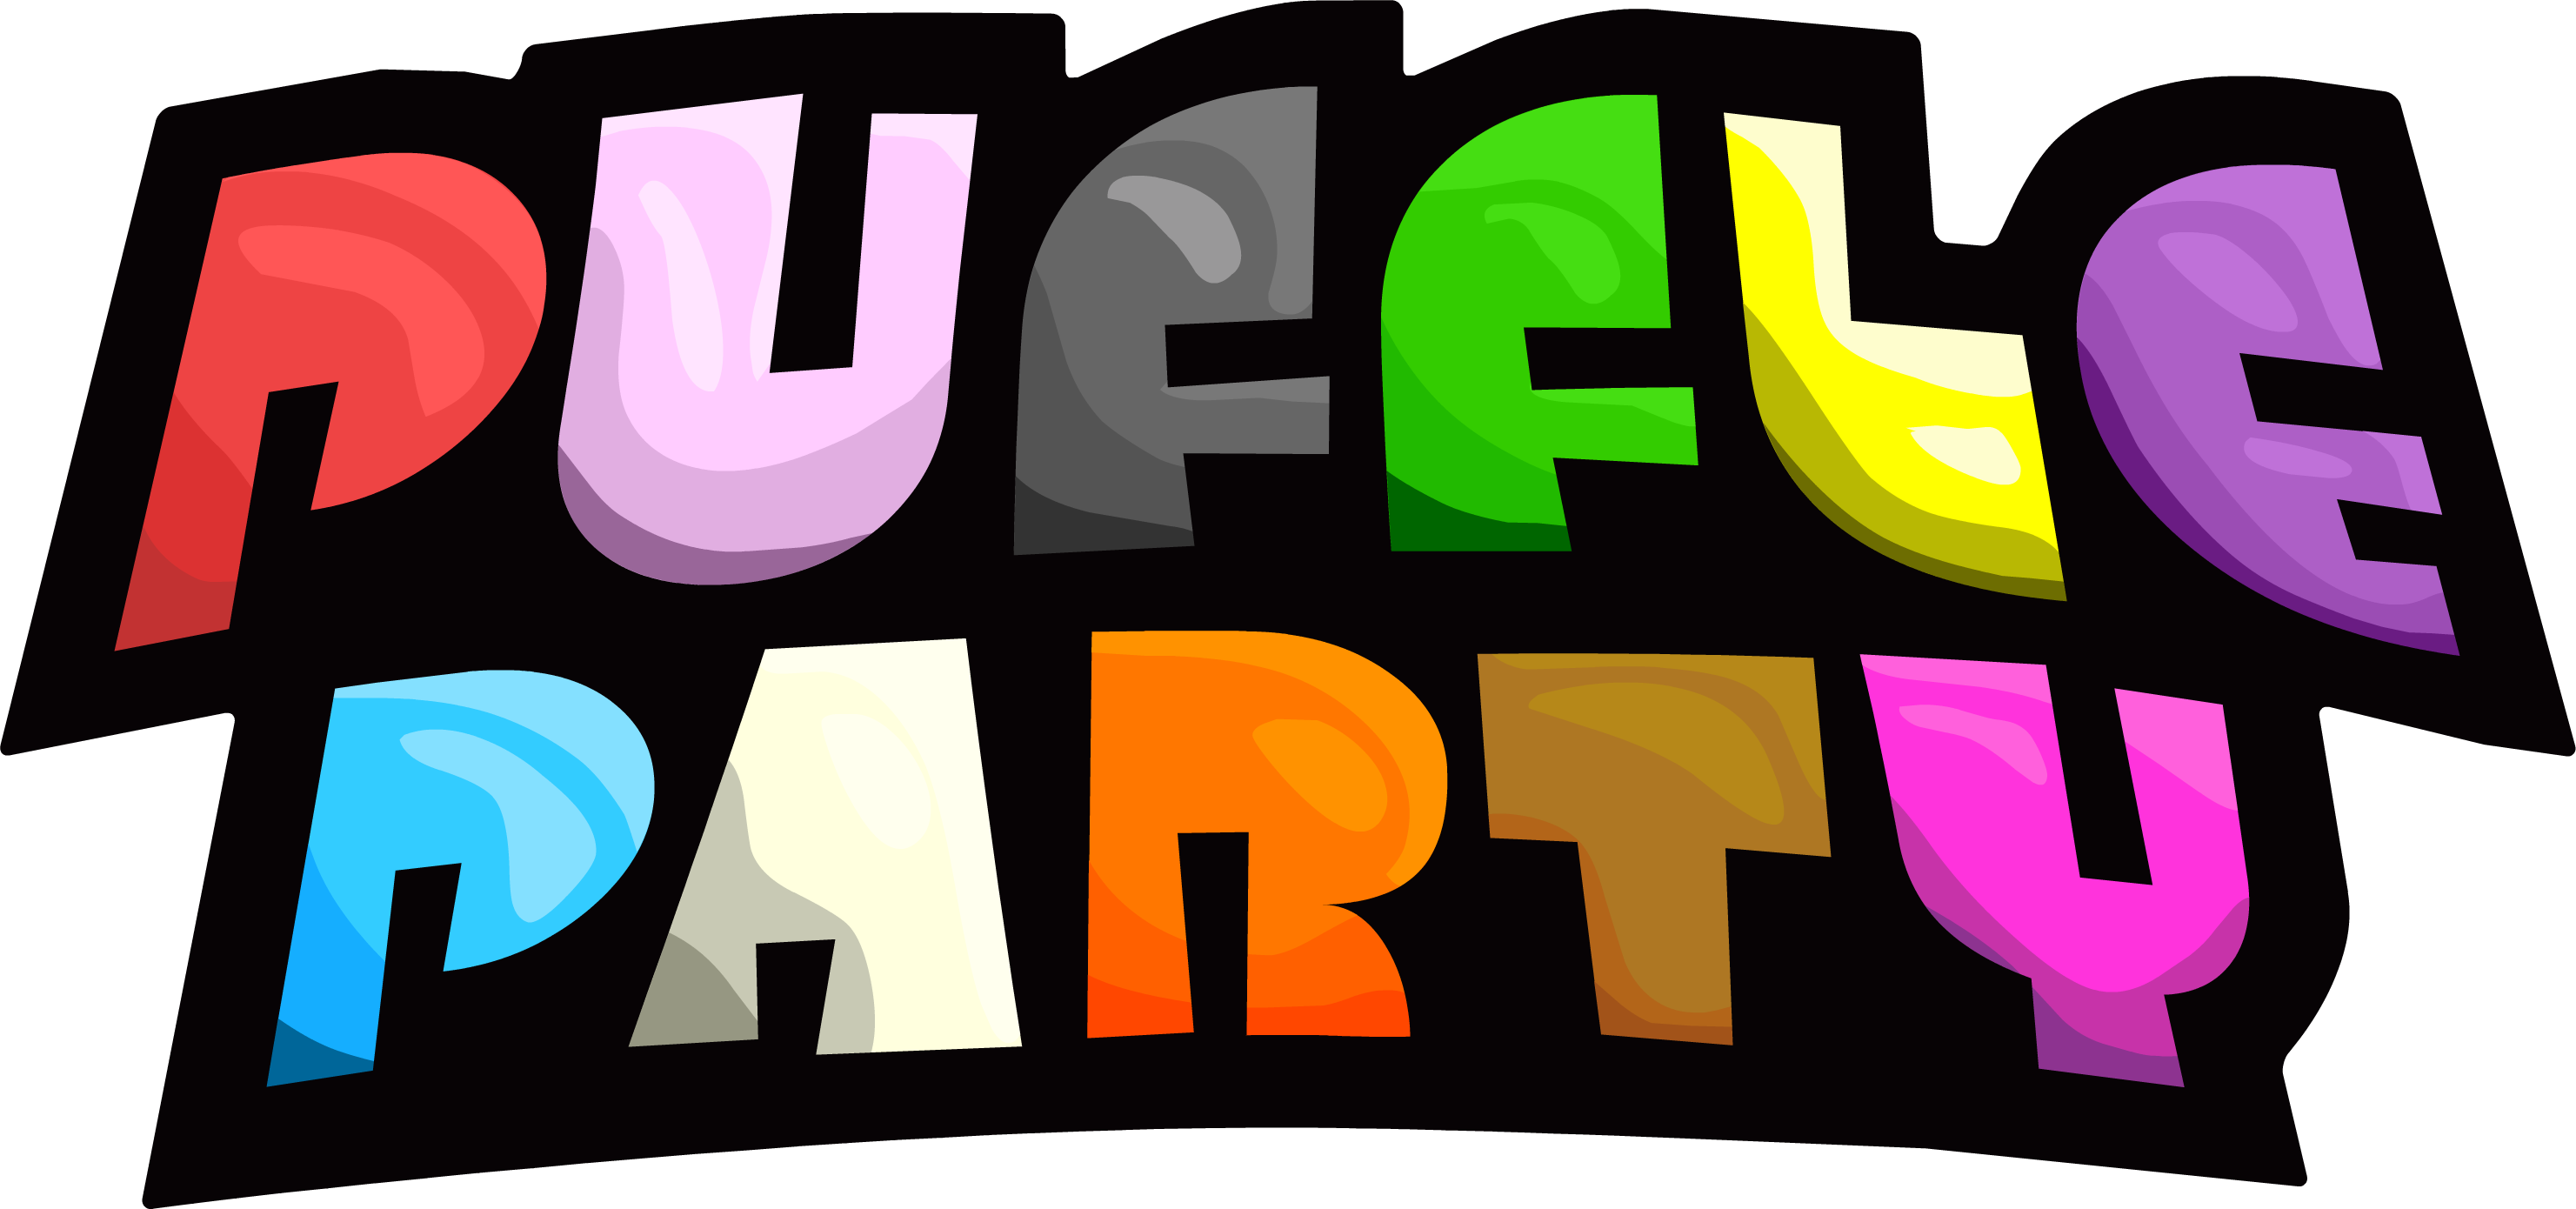 April Fools 2010 Logo. List of parties and